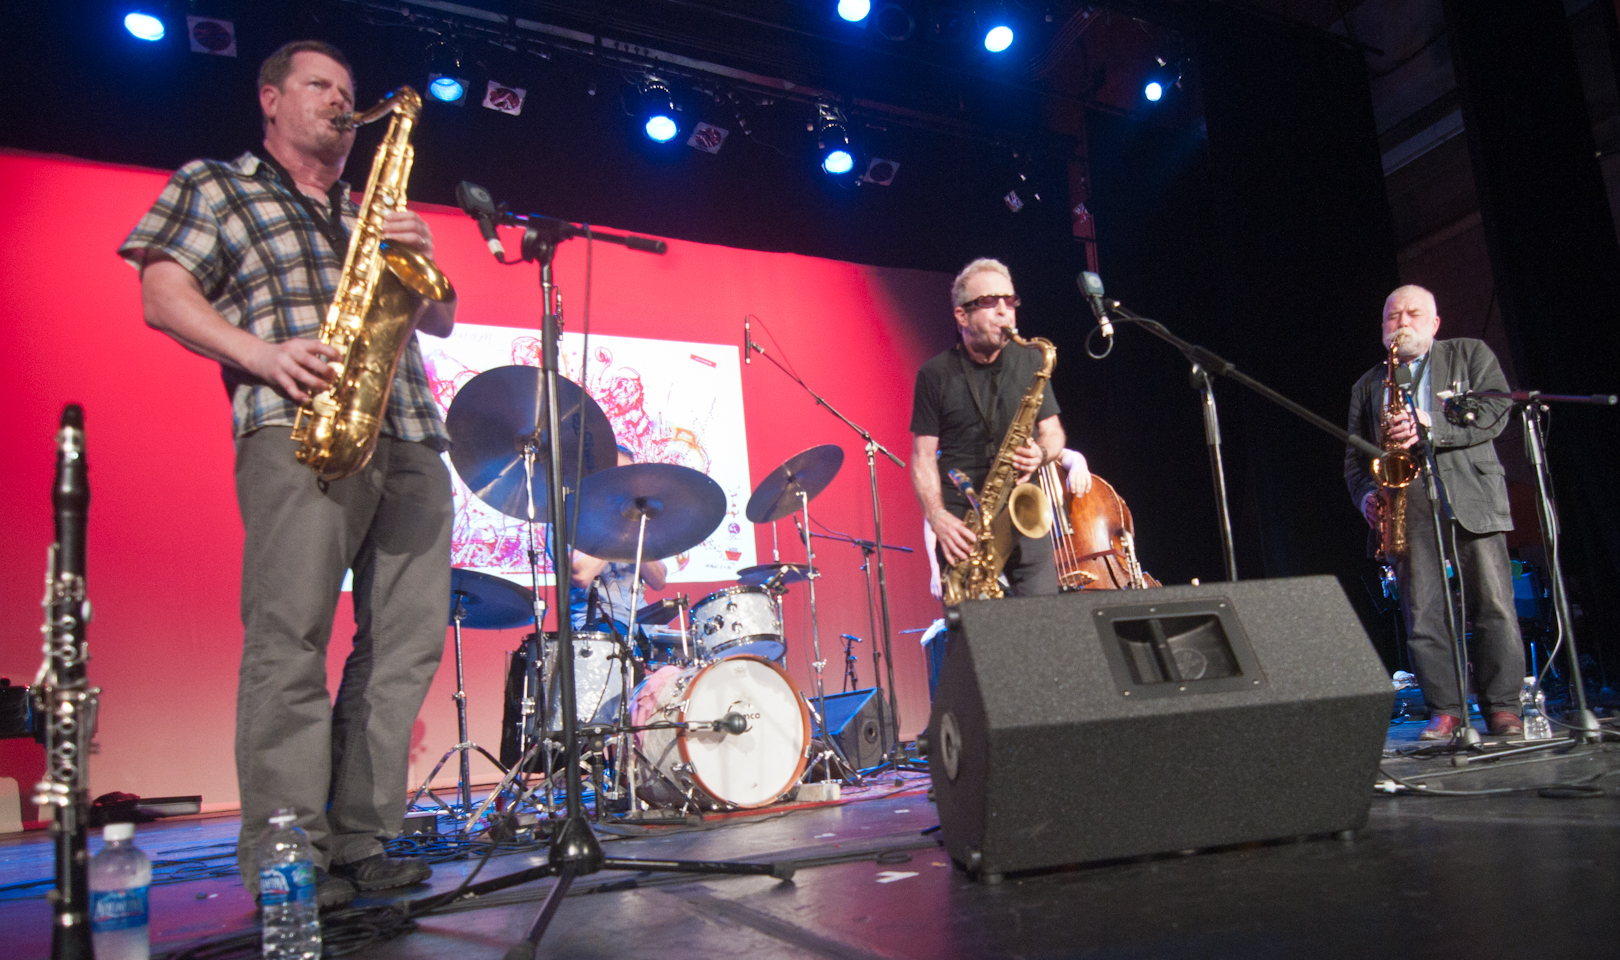 Ken Vandermark, Mars Williams and Peter Brotzmann at the Vision Festival 2011